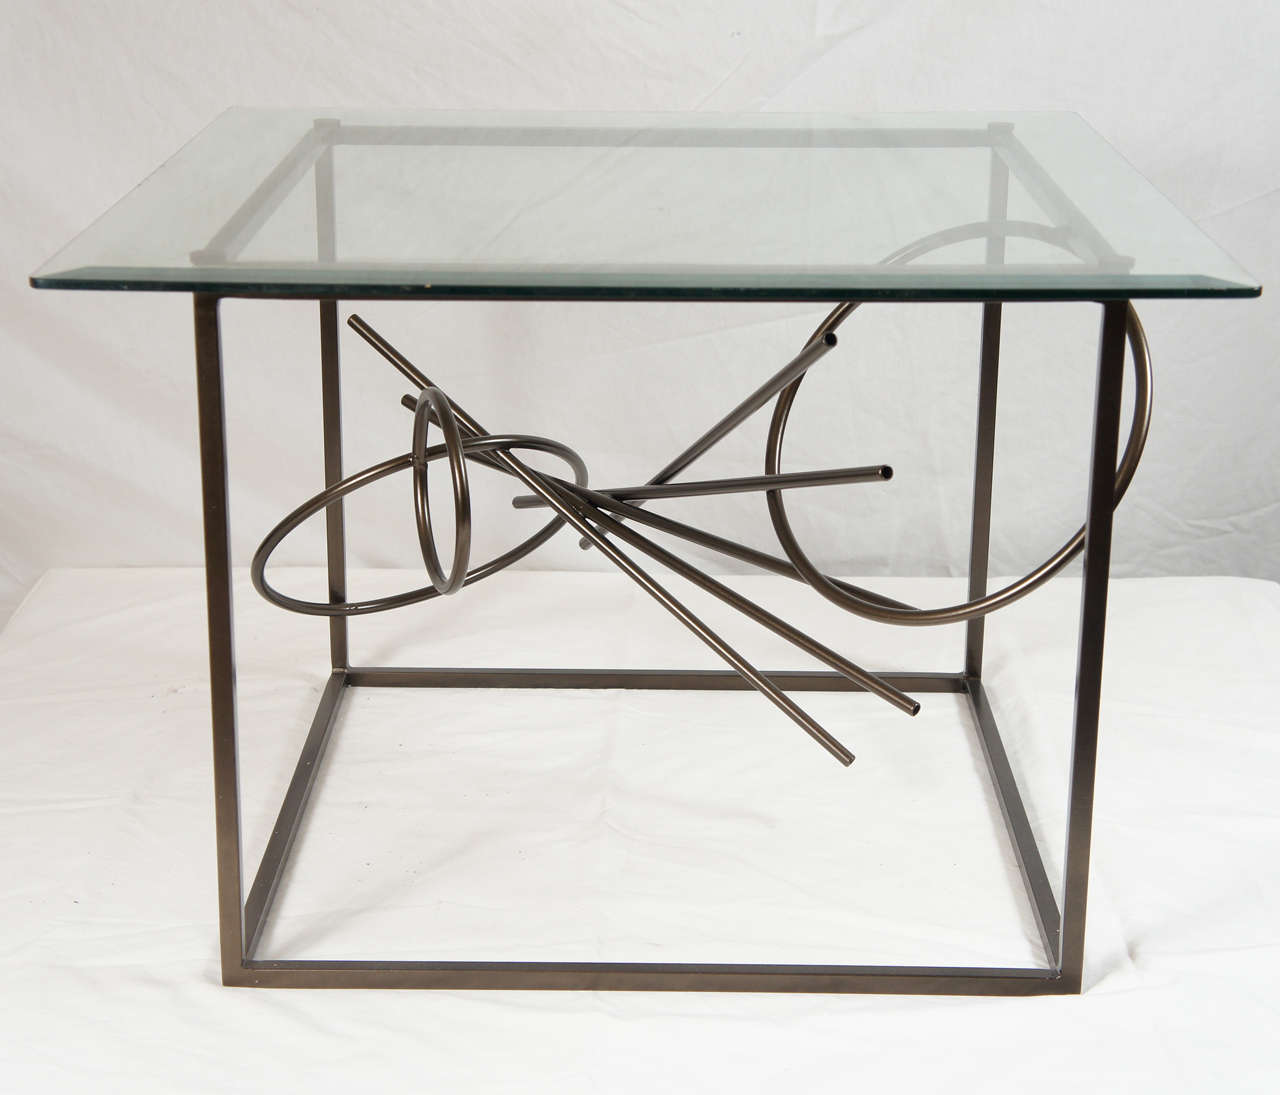 American Original Custom-Made in America, One of a Kind Sculptural Table by Lou Blass For Sale